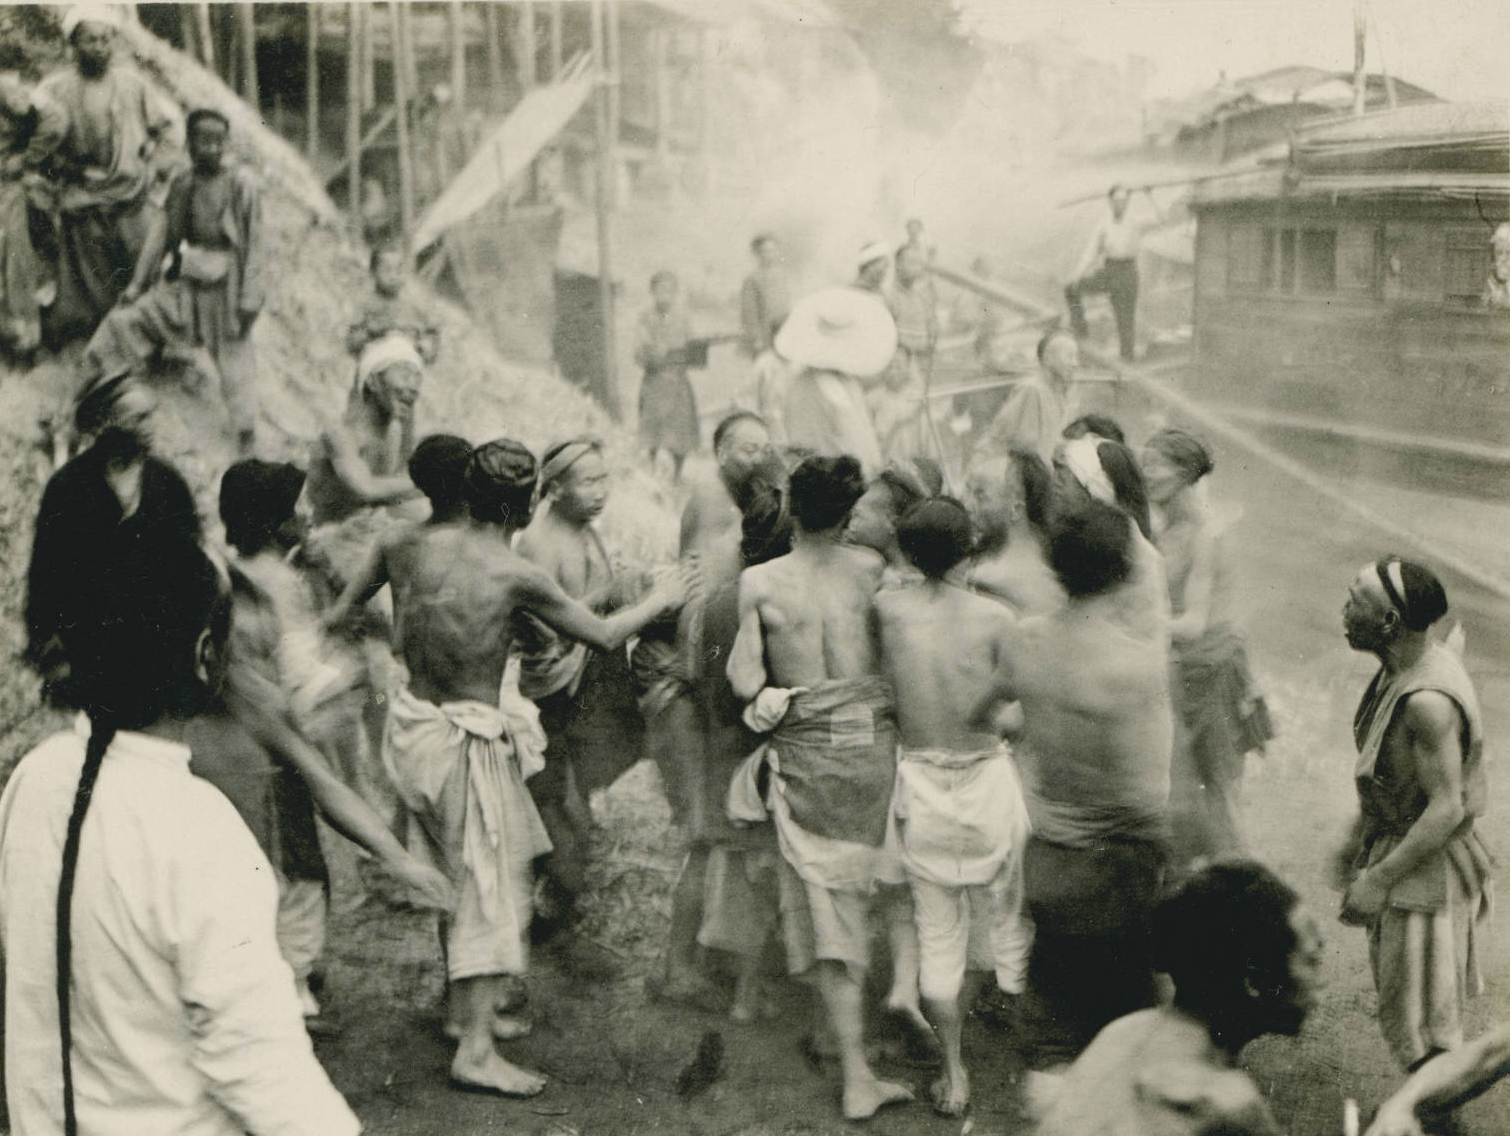 Fight between labor factions at Kia Ting, 1909-04